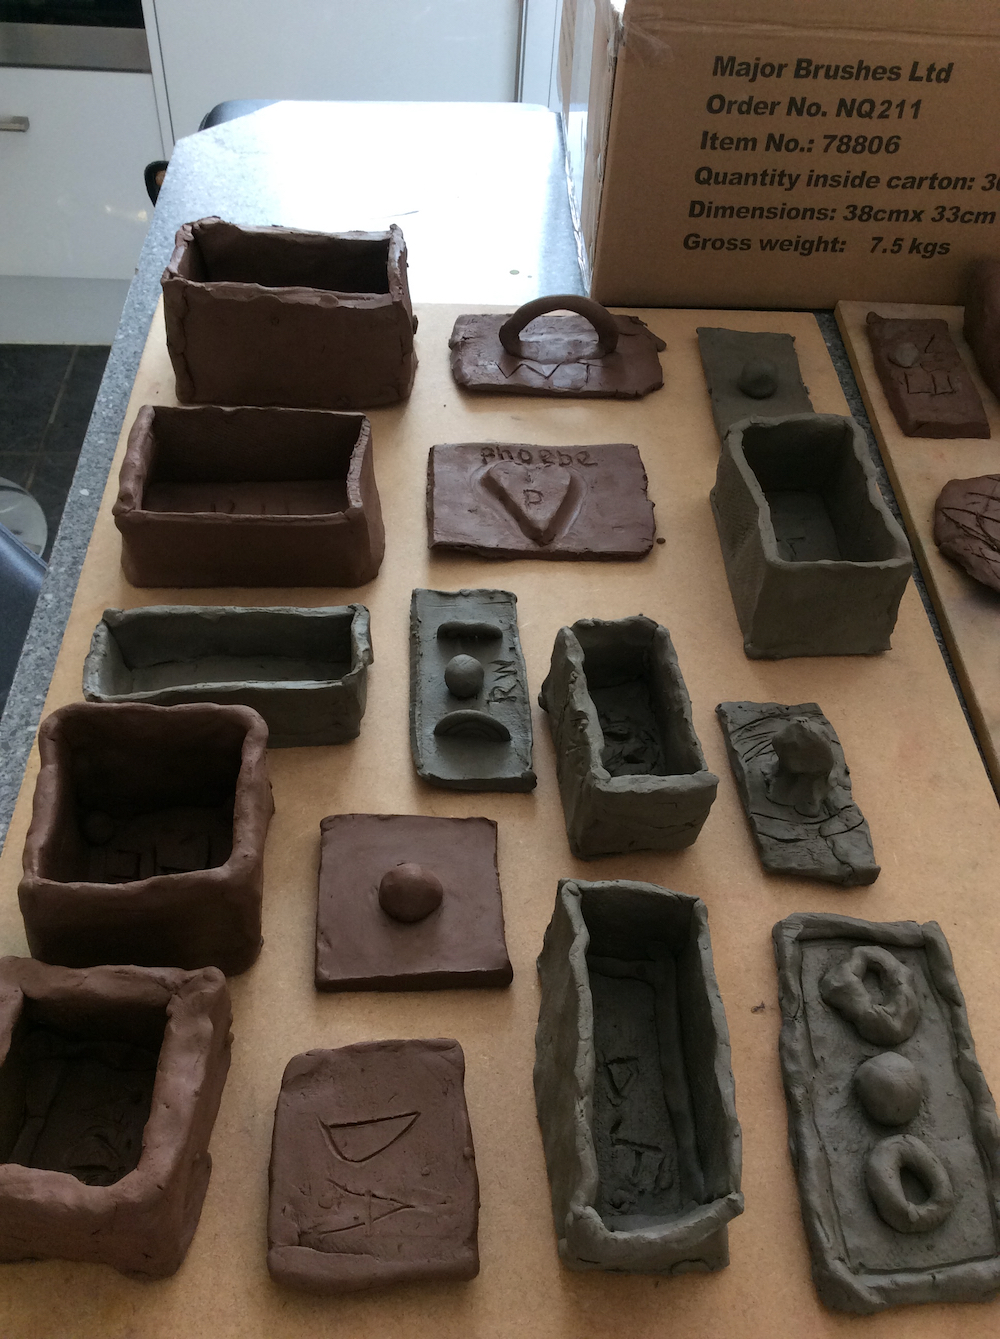 Finished memory boxes made in clay by Year 6 pupils